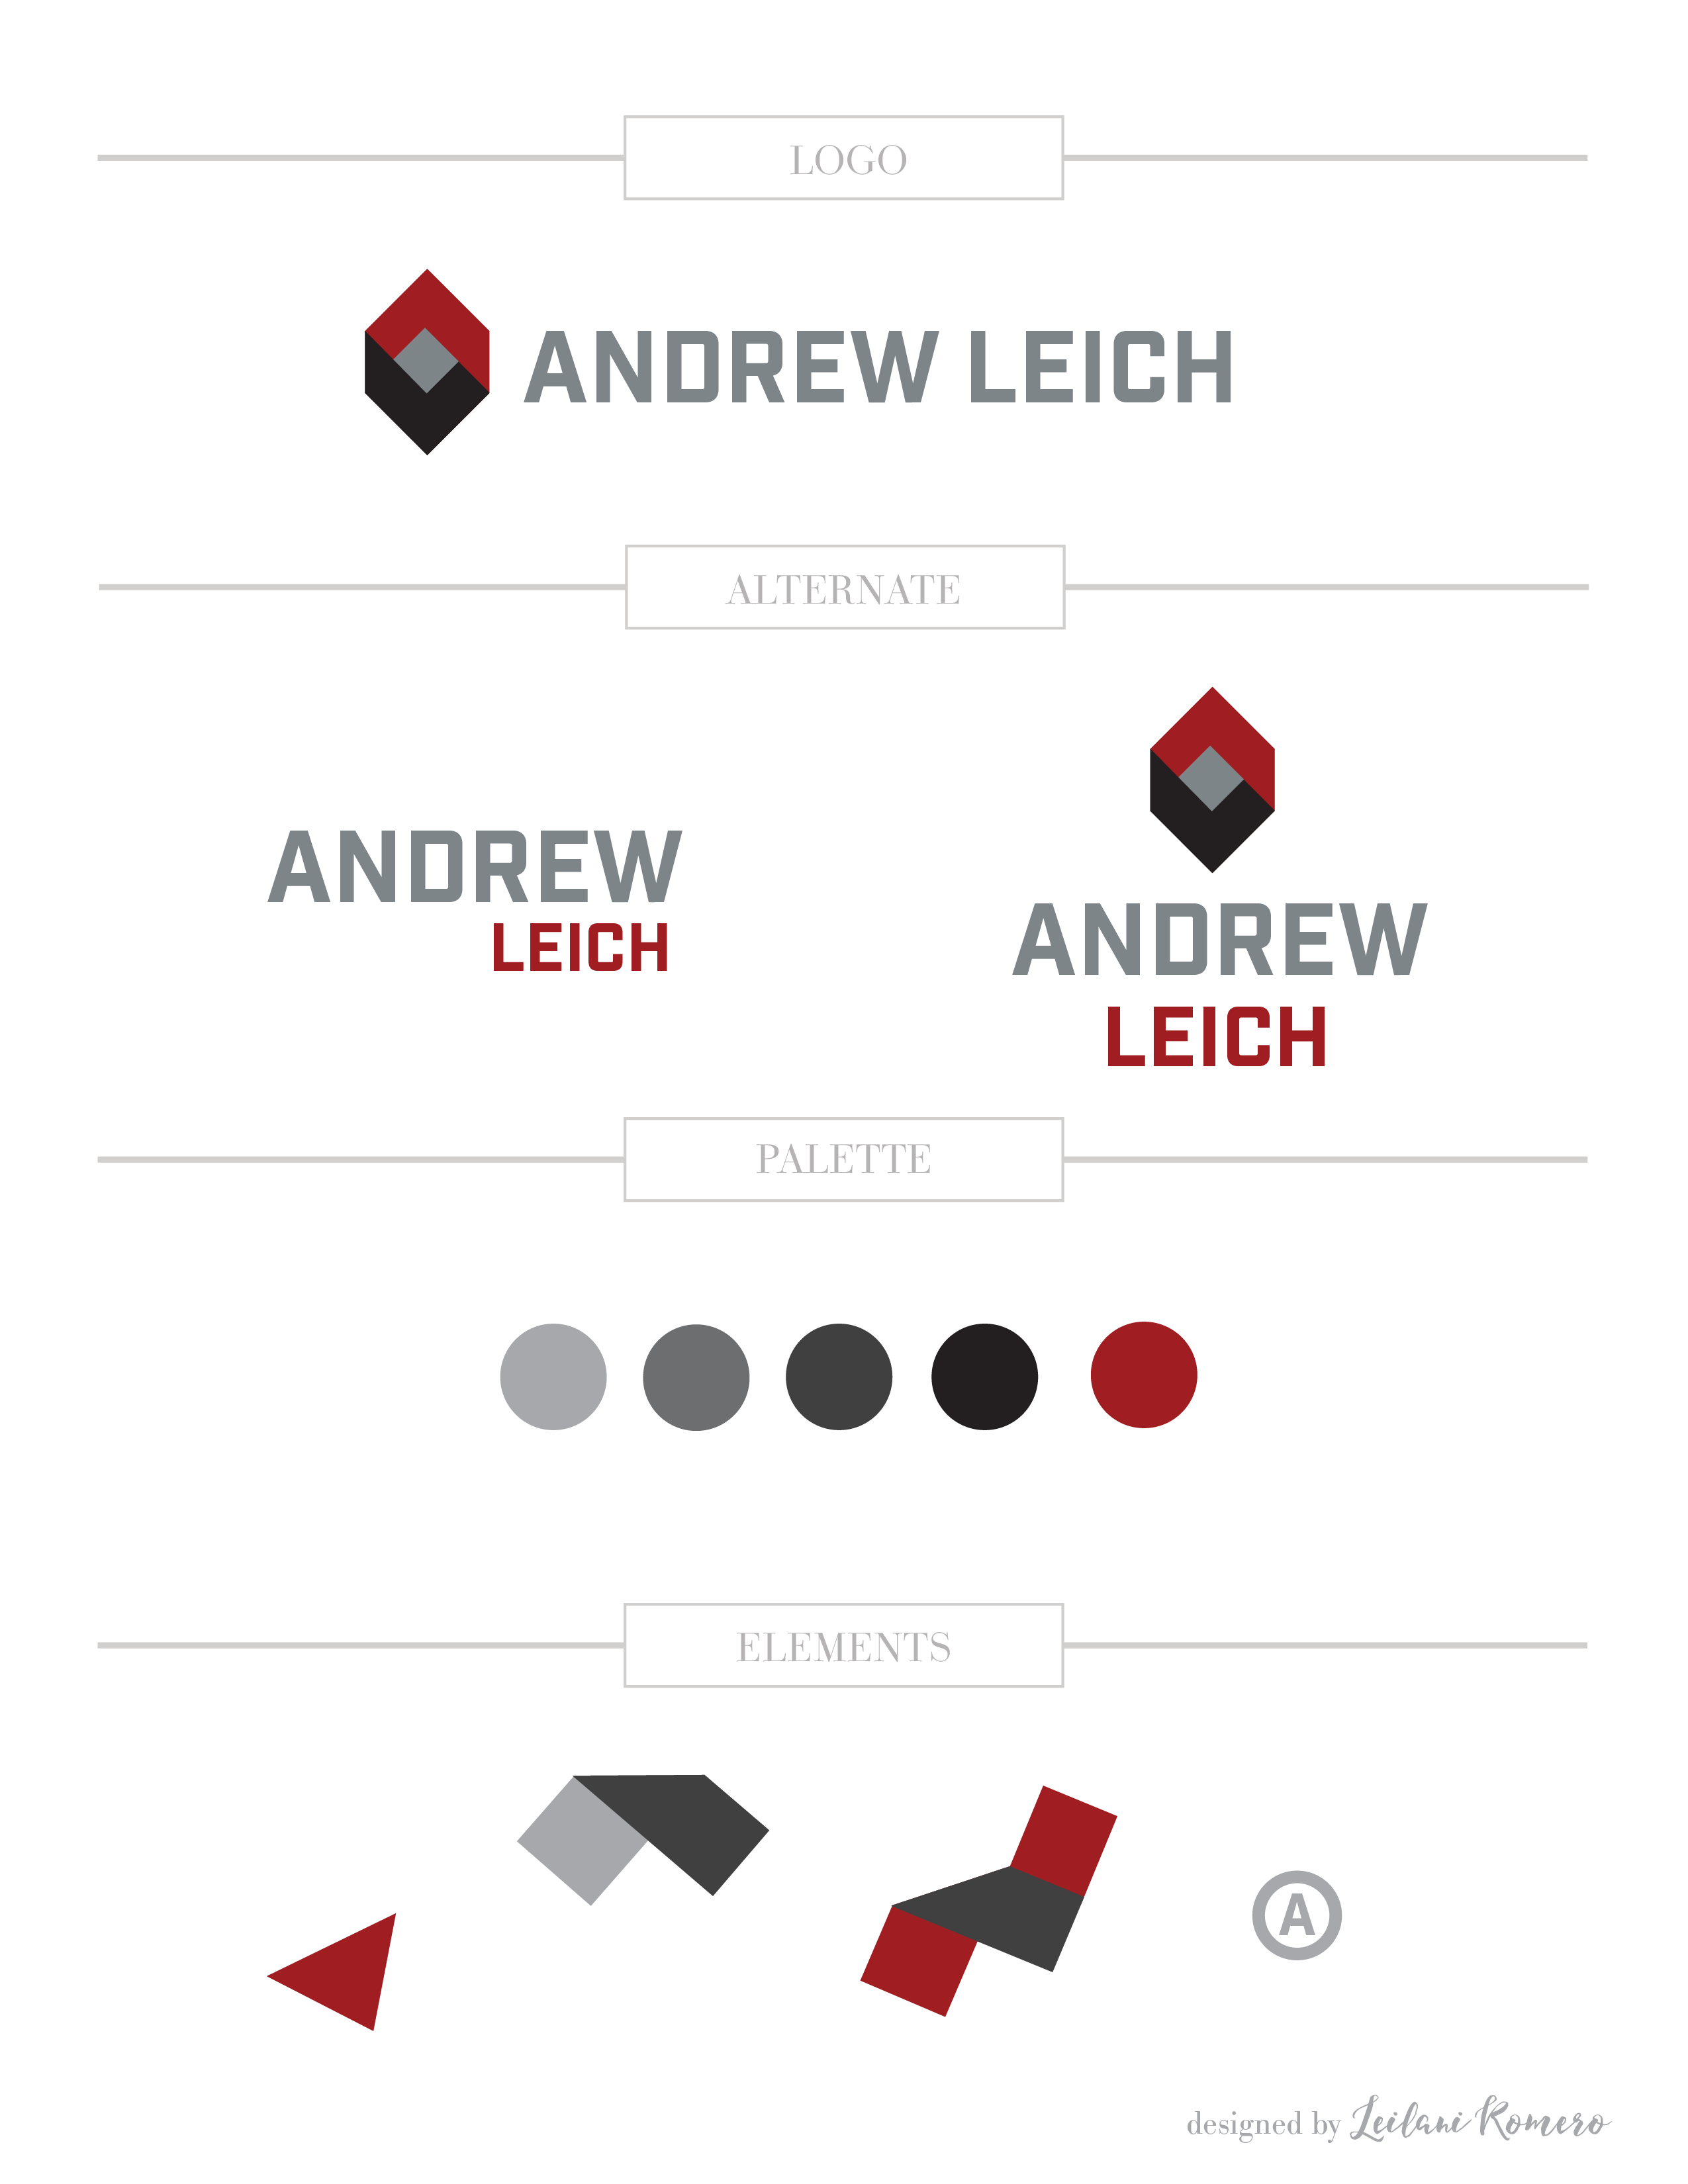 Andrew Leich Logo